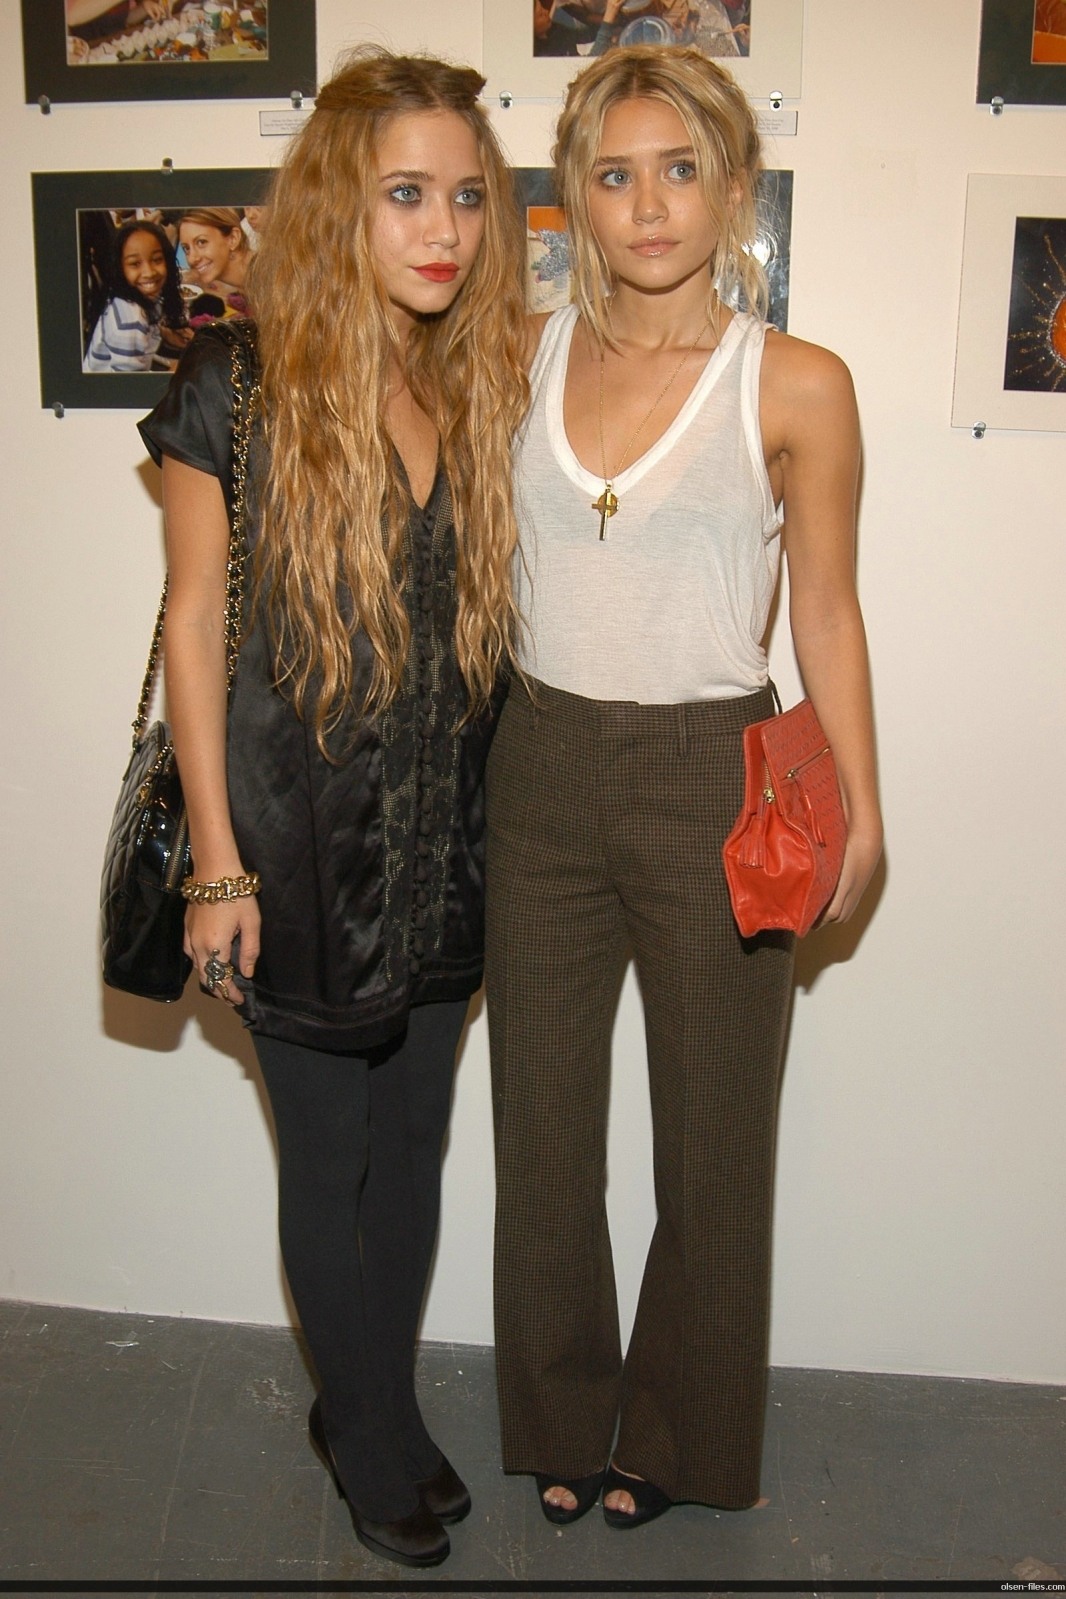 mary kate and ashly olsen Boho chic: Mary Kate and Ashley Olsen